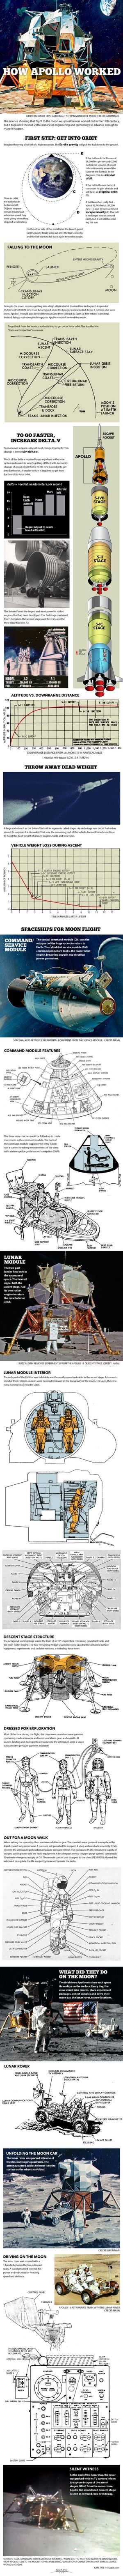 NASA's Apollo moon landings were audacious feats of engineering. See how the amazing Apollo moon landings worked in this Space.com infographic. Credit: by Karl Tate, Infographics Artist